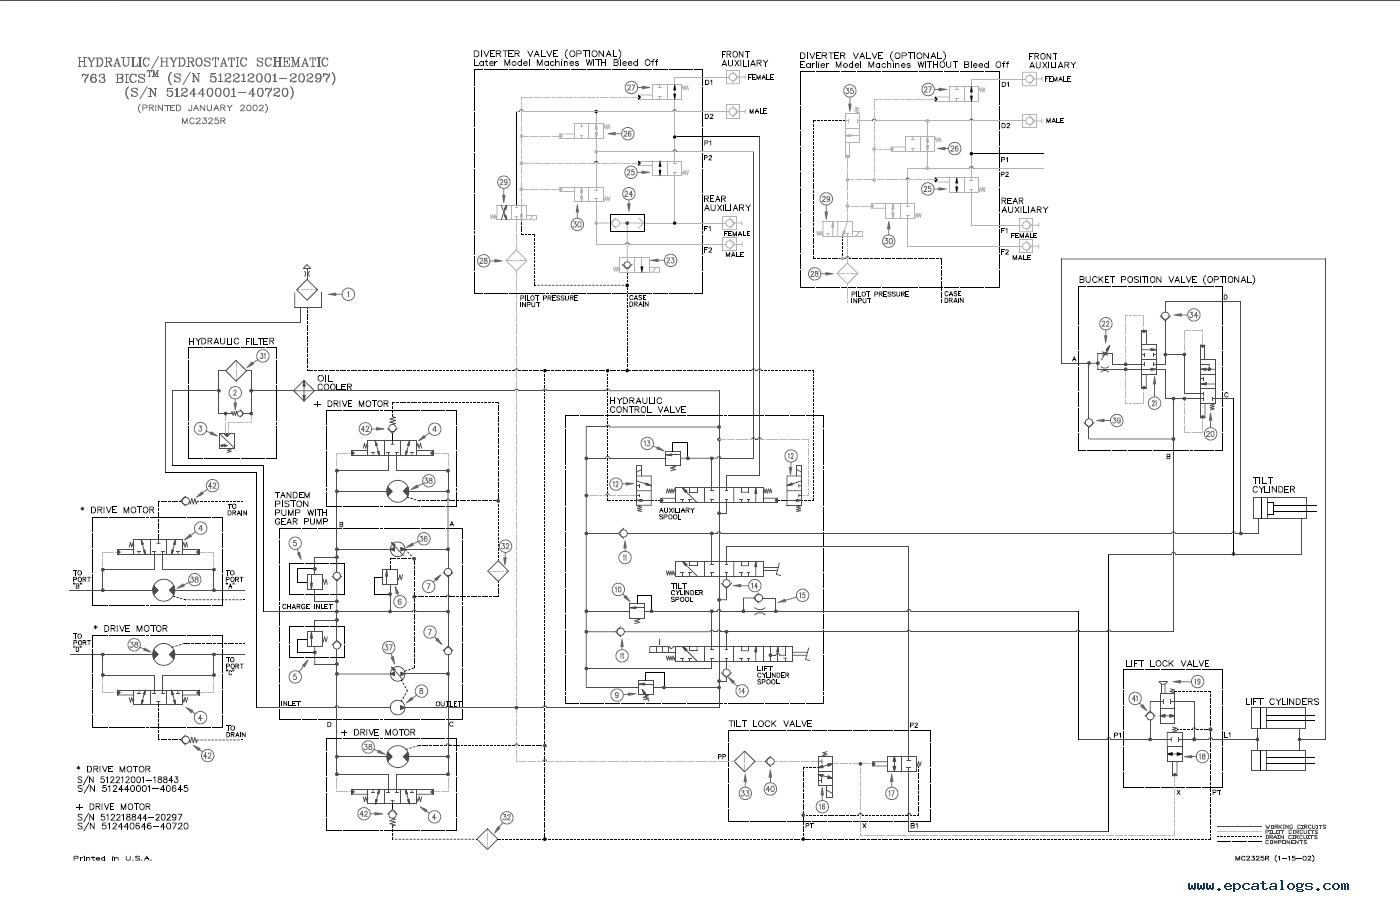 Mustang Skid Steer Wiring Diagram - wiring diagram subject-lynda -  subject-lynda.giorgiomariacalori.it | Mustang Skid Steer Wiring Diagram |  | giorgiomariacalori.it